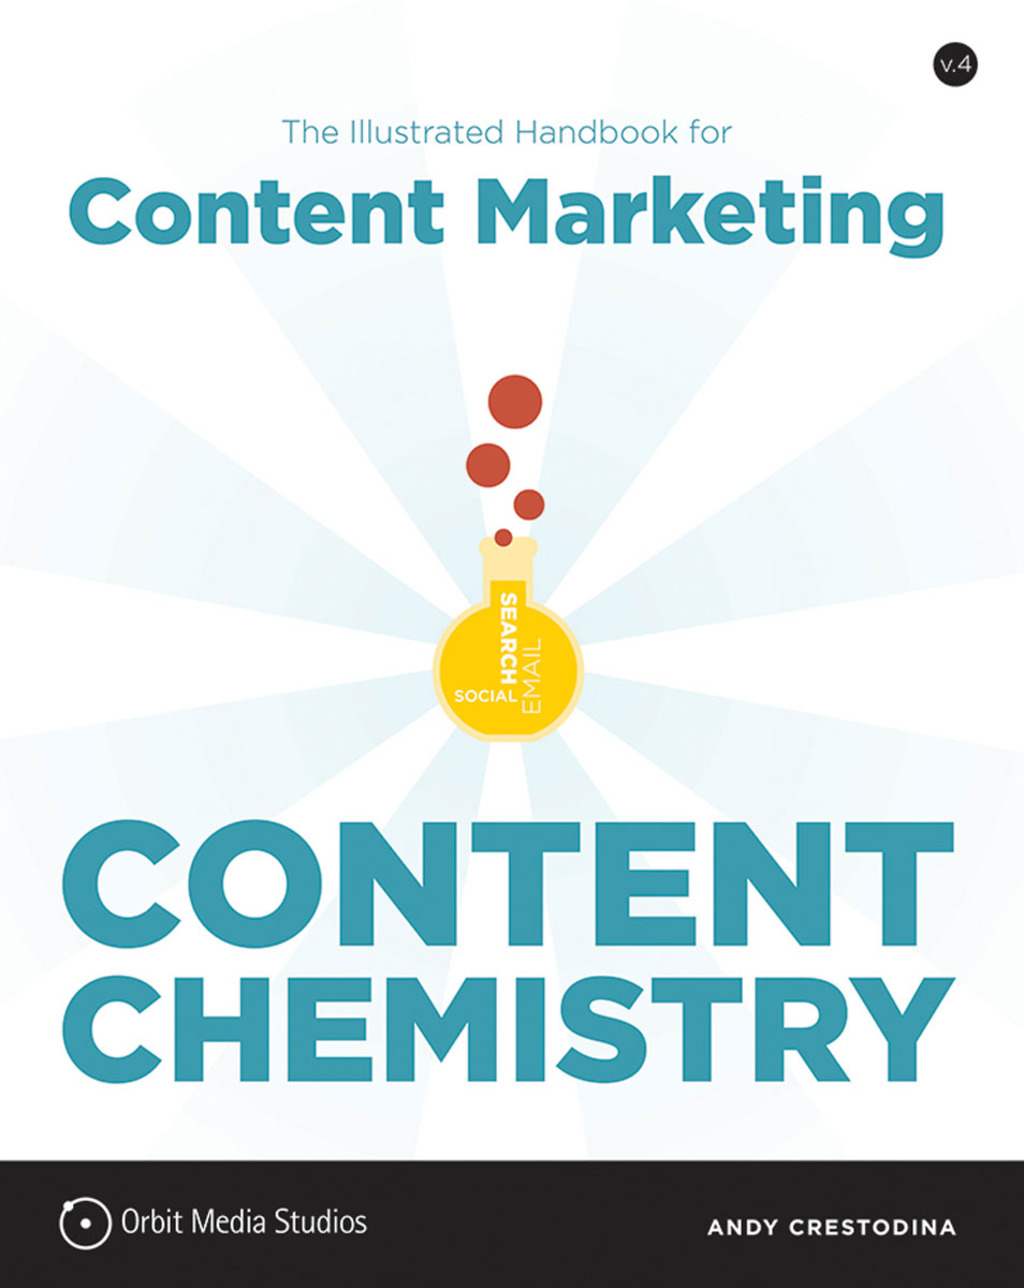 Content Chemistry: The Illustrated Handbook For Content Marketing (ebook)